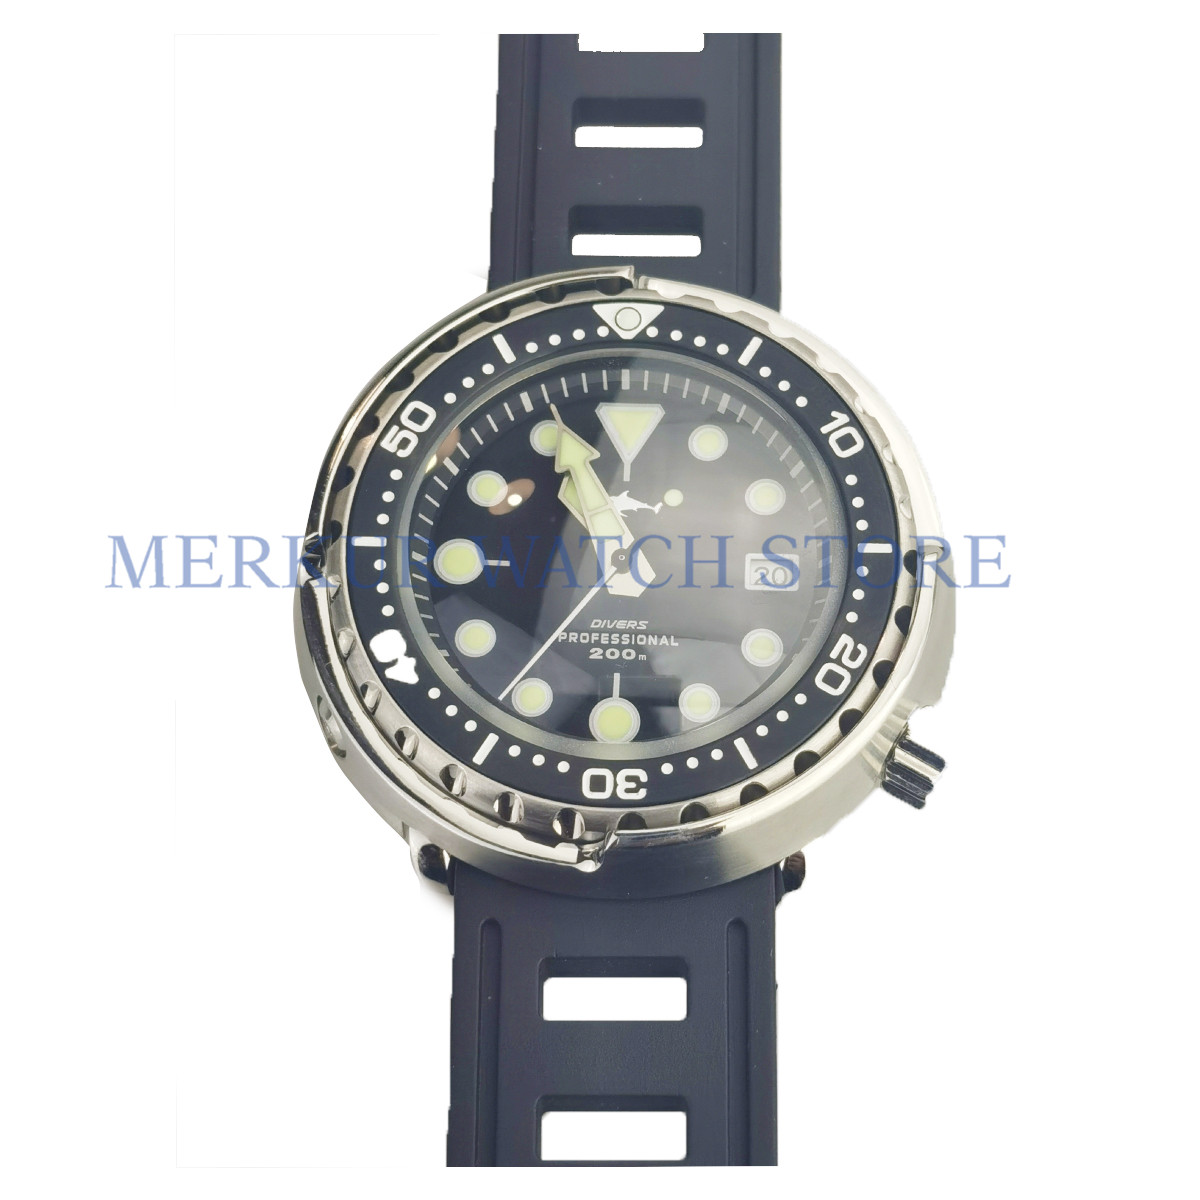 Sharkey Diver Watch Automatic Marine Master Mens Tuna Can image